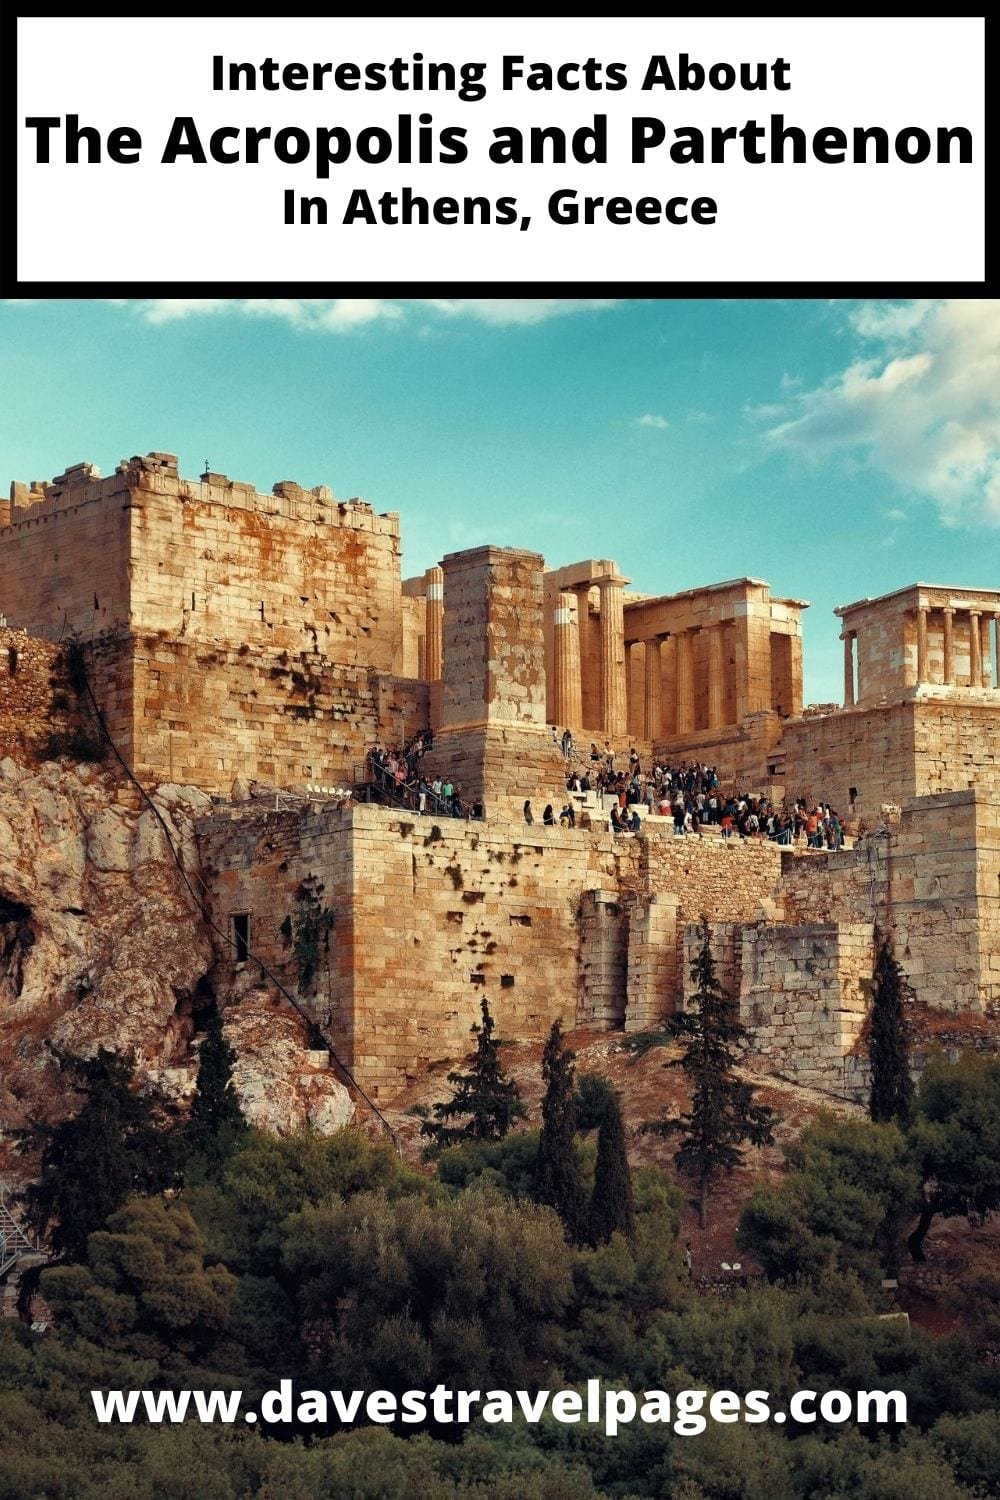 Interesting Facts About the acropolis and parthenon in athens greece